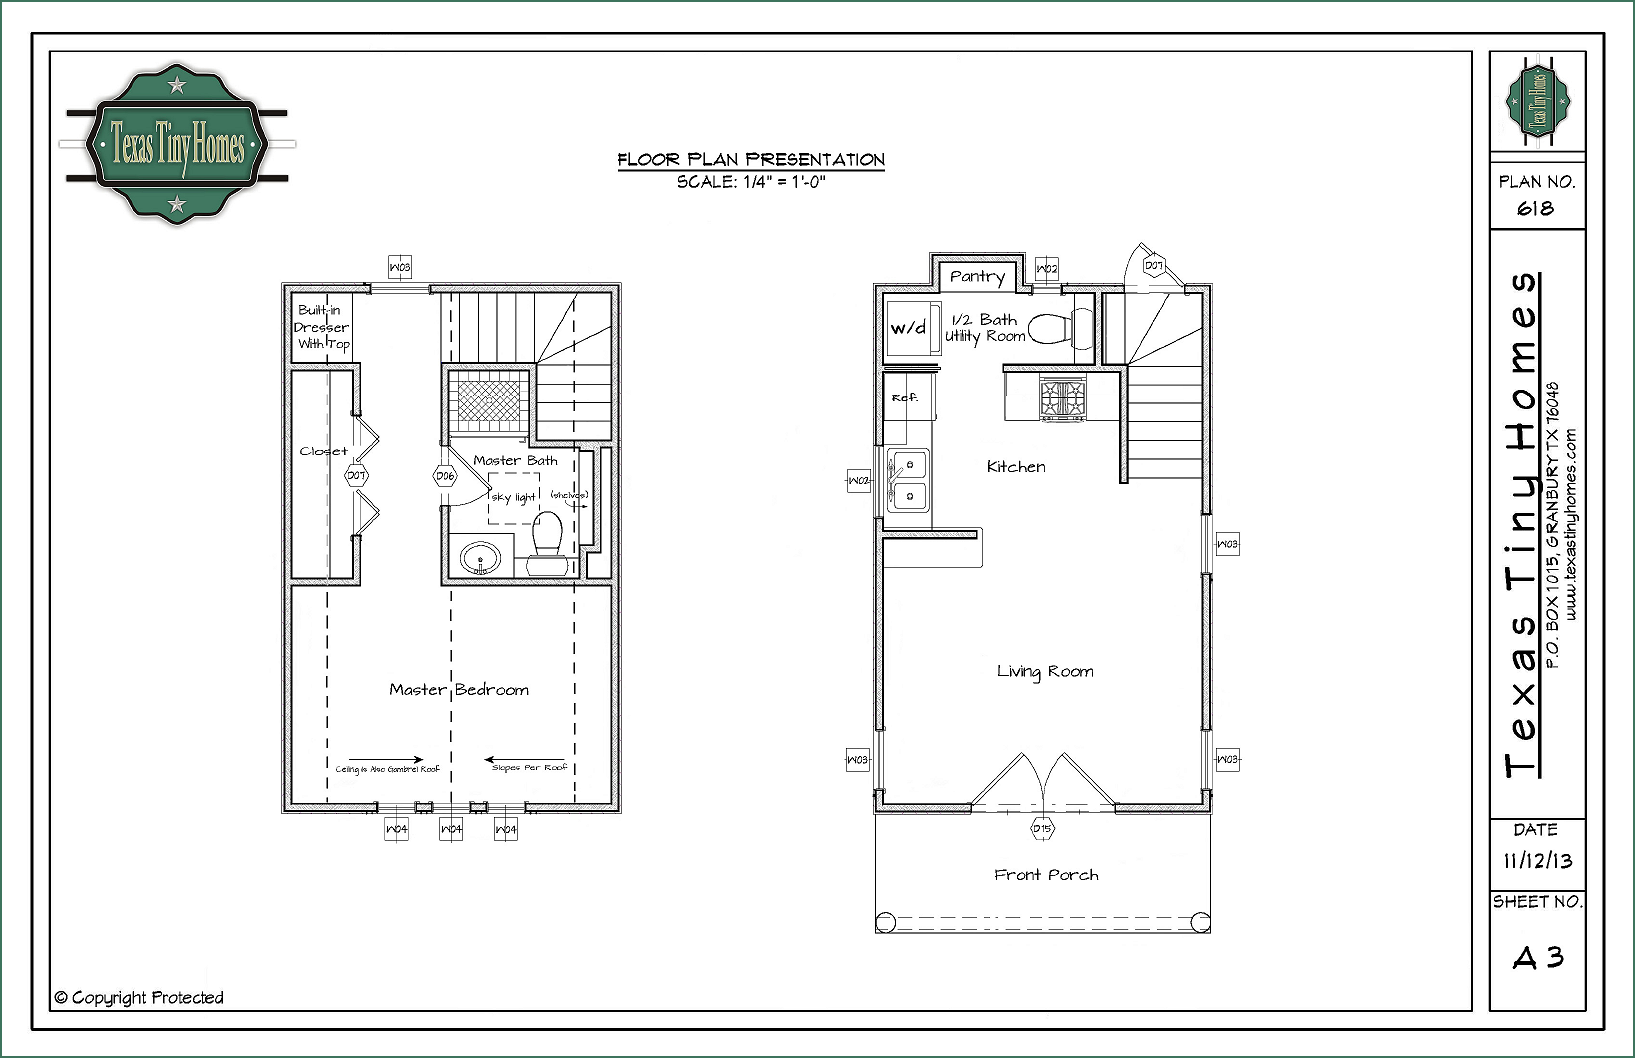 Texas tiny homes plan 618 Small house blueprint